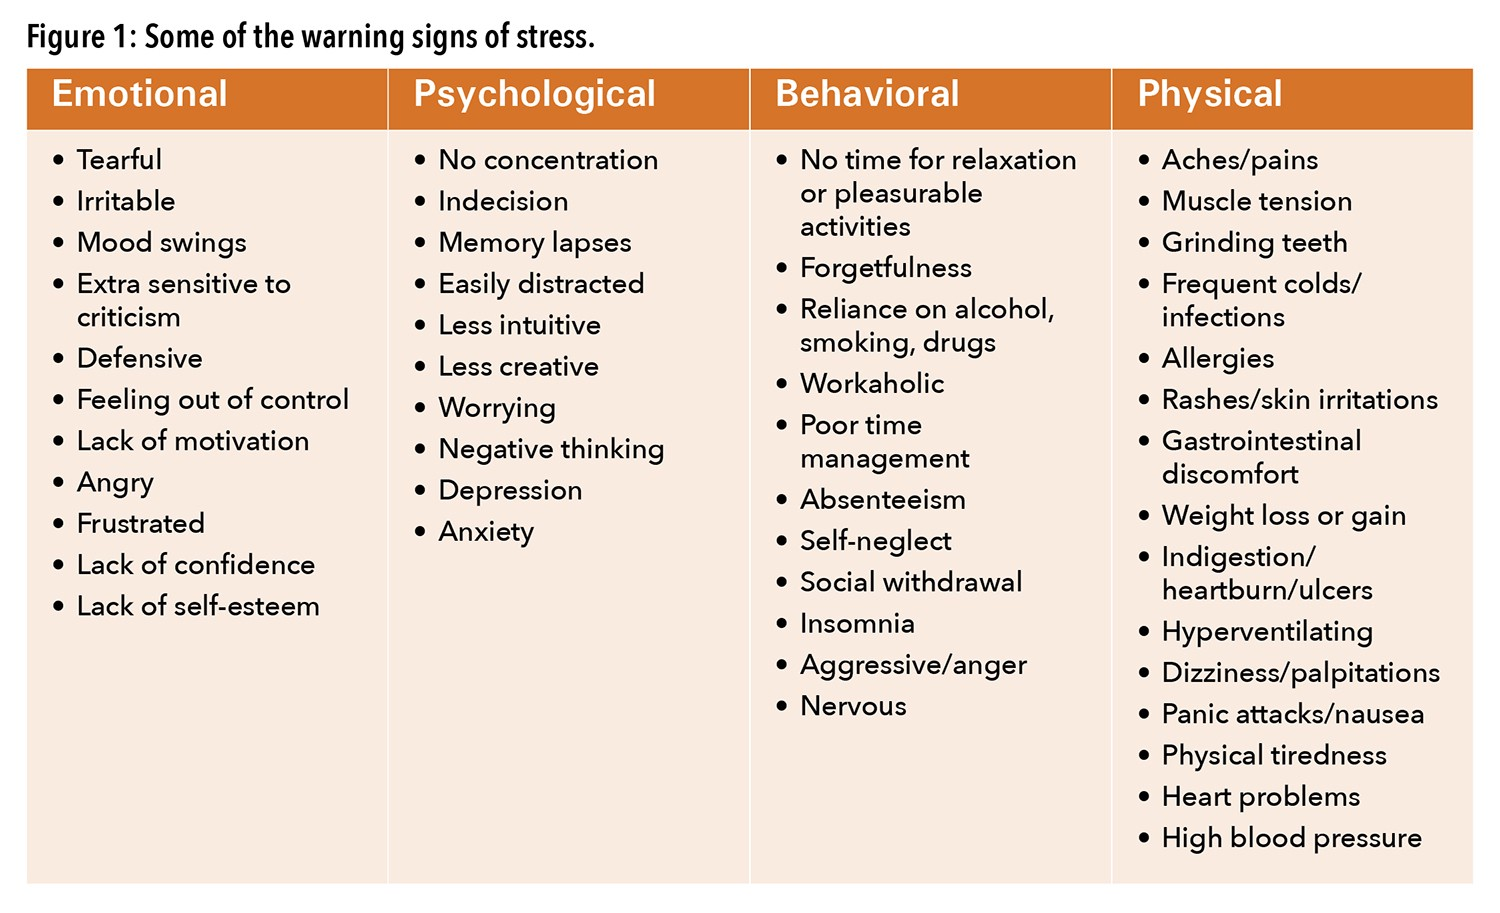 A chart with the emotional, psychological, behavioral, and physical warning signs of stress.